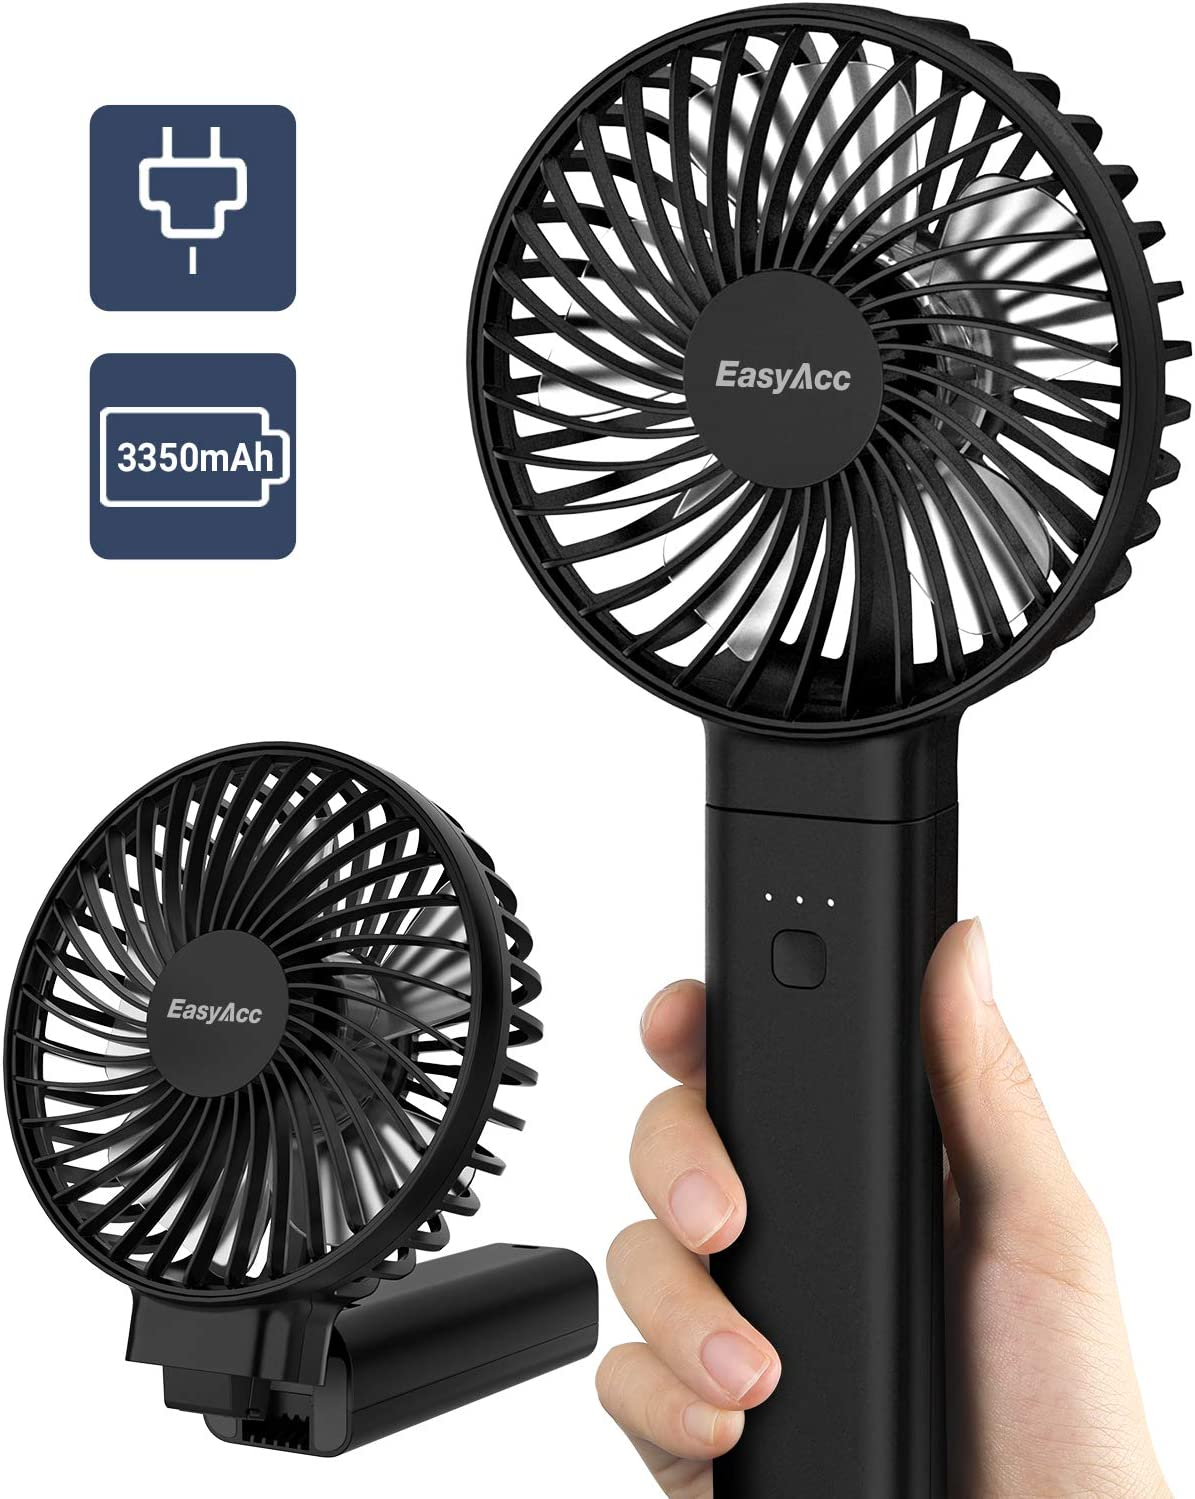 Handheld Fan, EasyAcc 3350mAh Battery Fan 2020 Upgraded Portable Fan with Unique One Touch Power Off USB Desk Fan 3-17 Hours 4 Speeds Strong Winds Personal Cooling Fan for Home Office Outdoor-Black